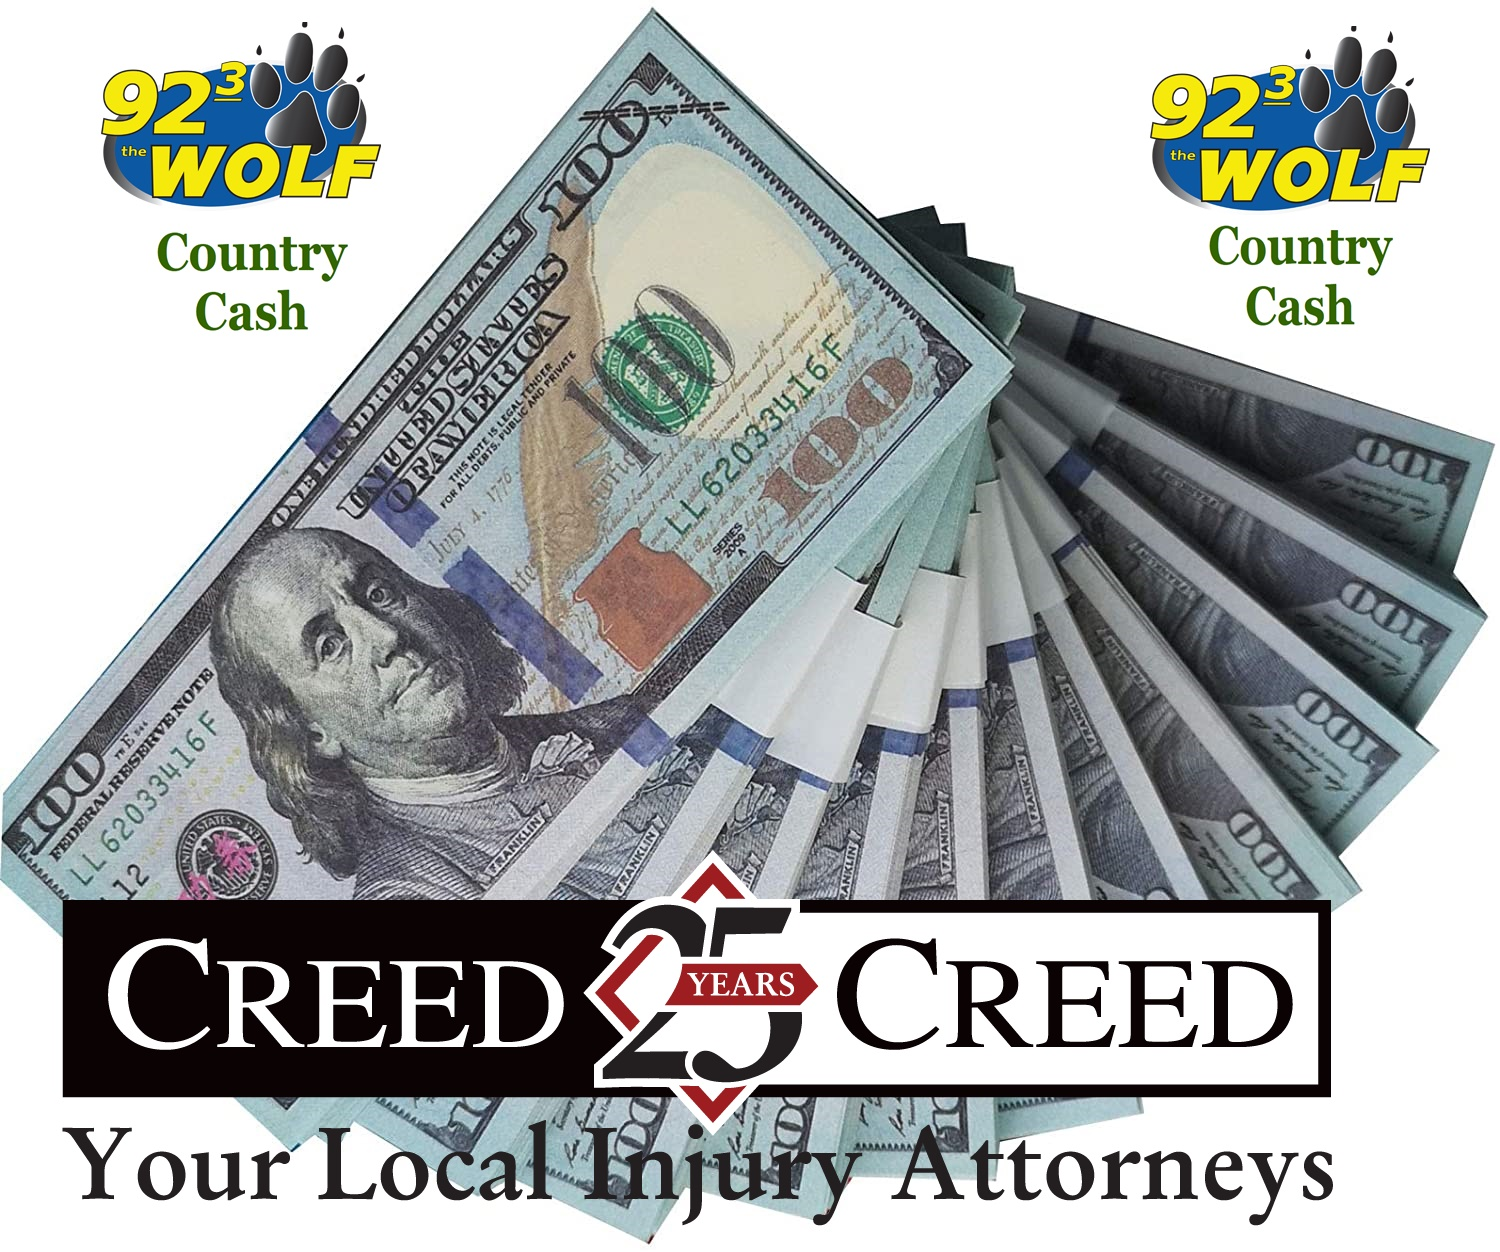 92.3 THE WOLF ALONG WITH CREED & CREED WANT YOU TO WIN $500 IN COUNTRY CASH